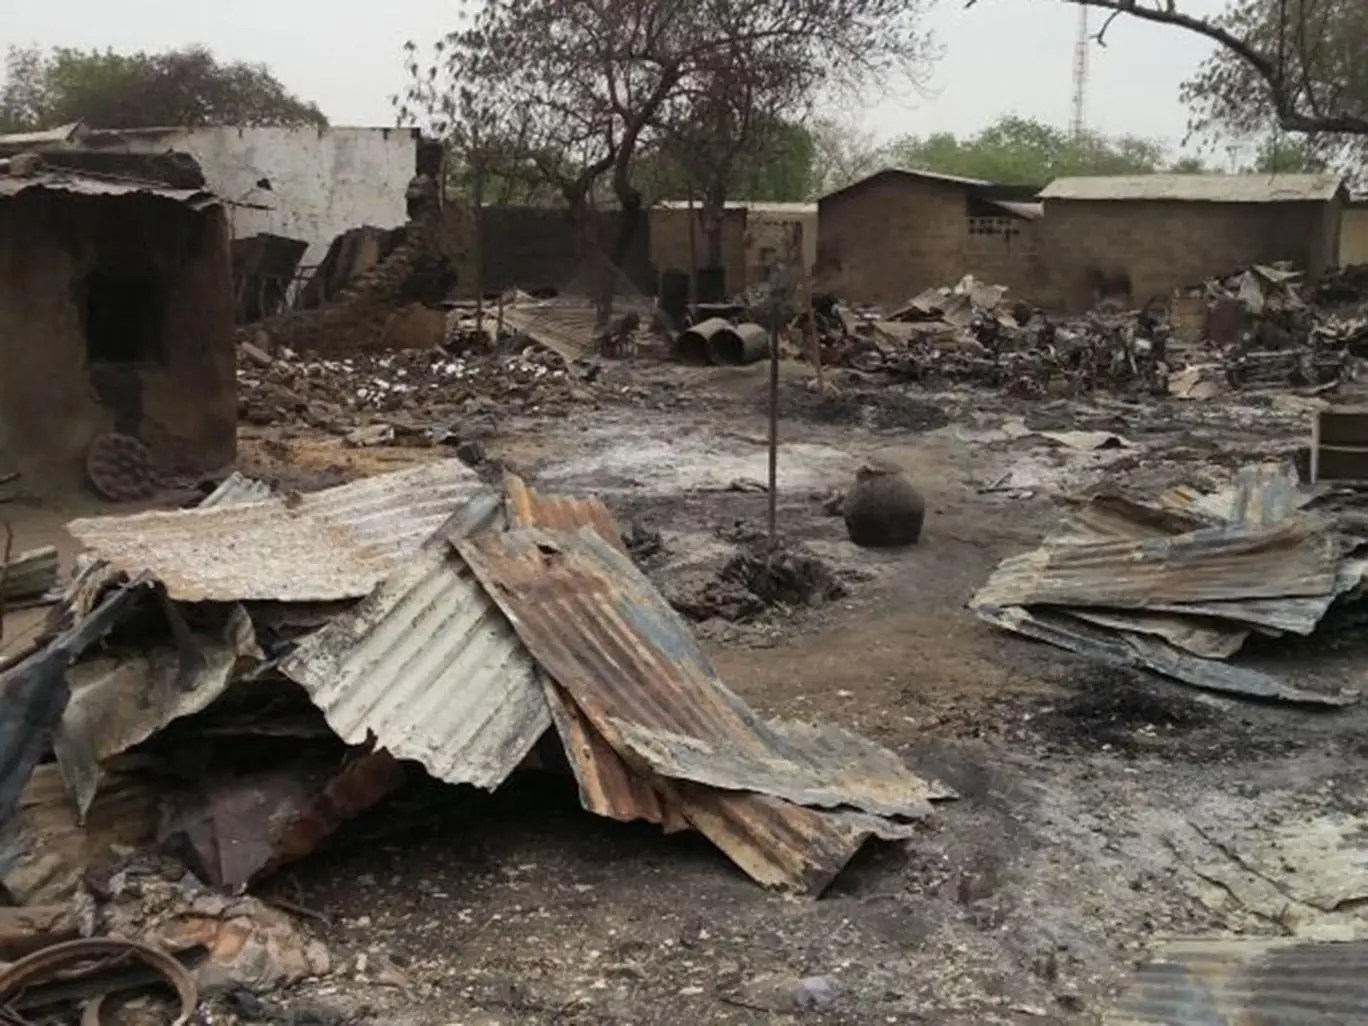 Baga after a previous Boko Haram raid. Much of the village has been destroyed in this month's attacks